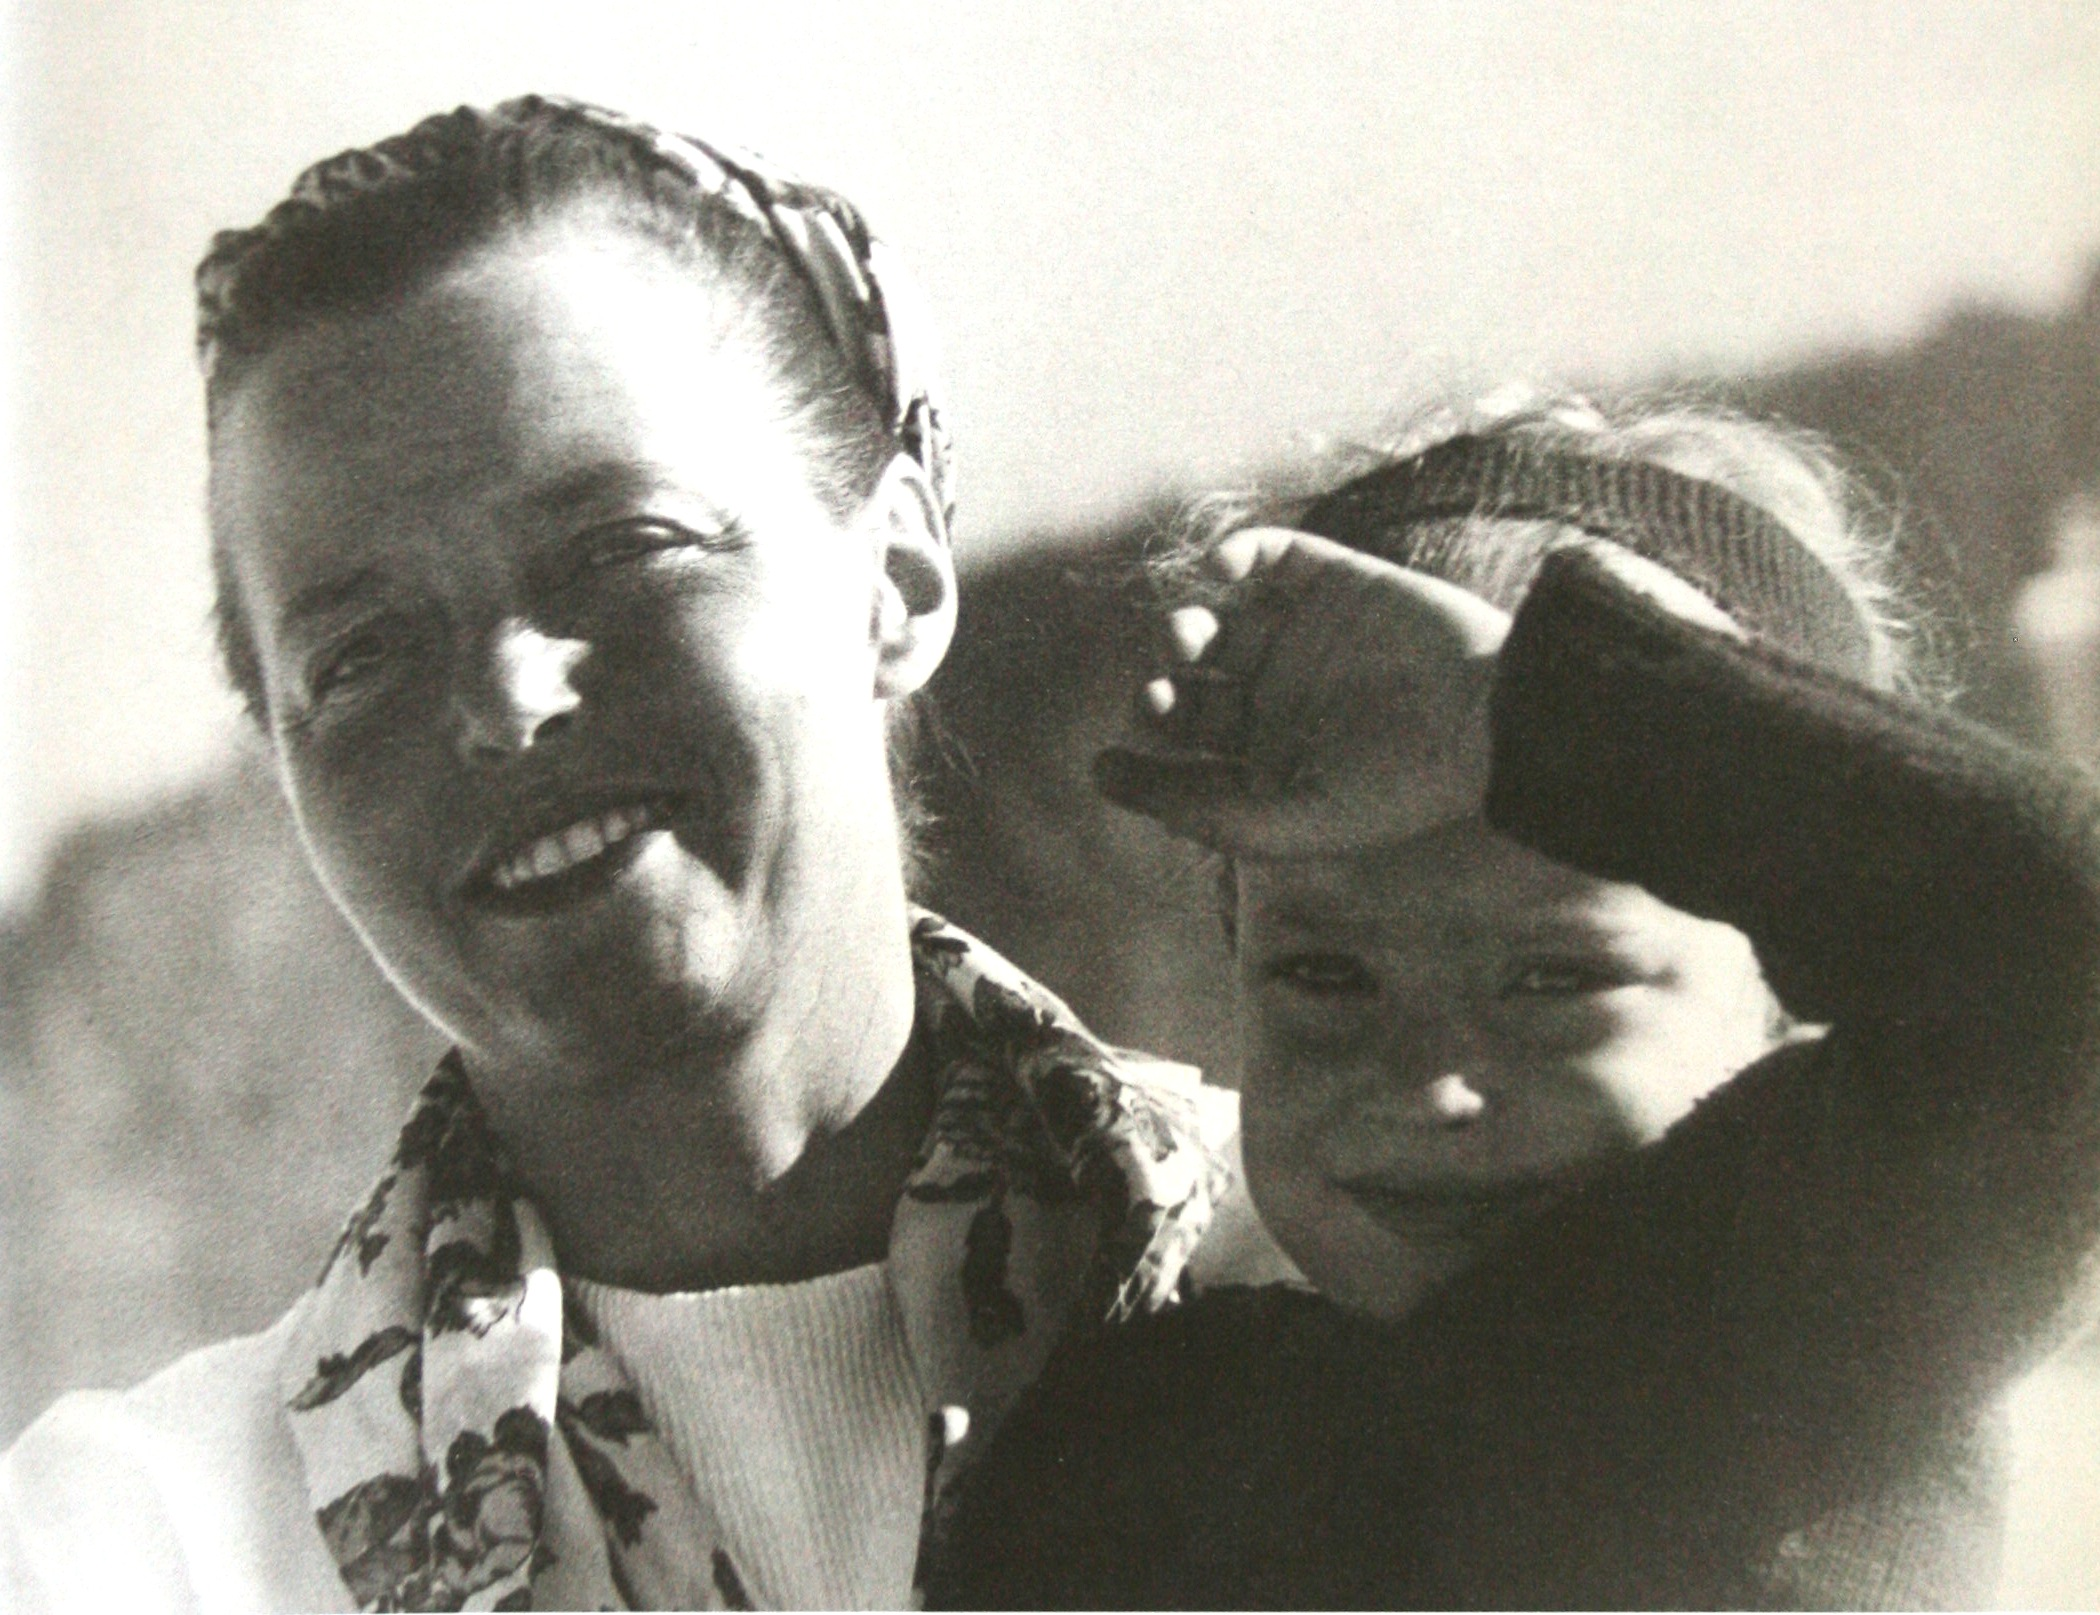 Charlotte Perriand and Pernette, her daughter, 1947